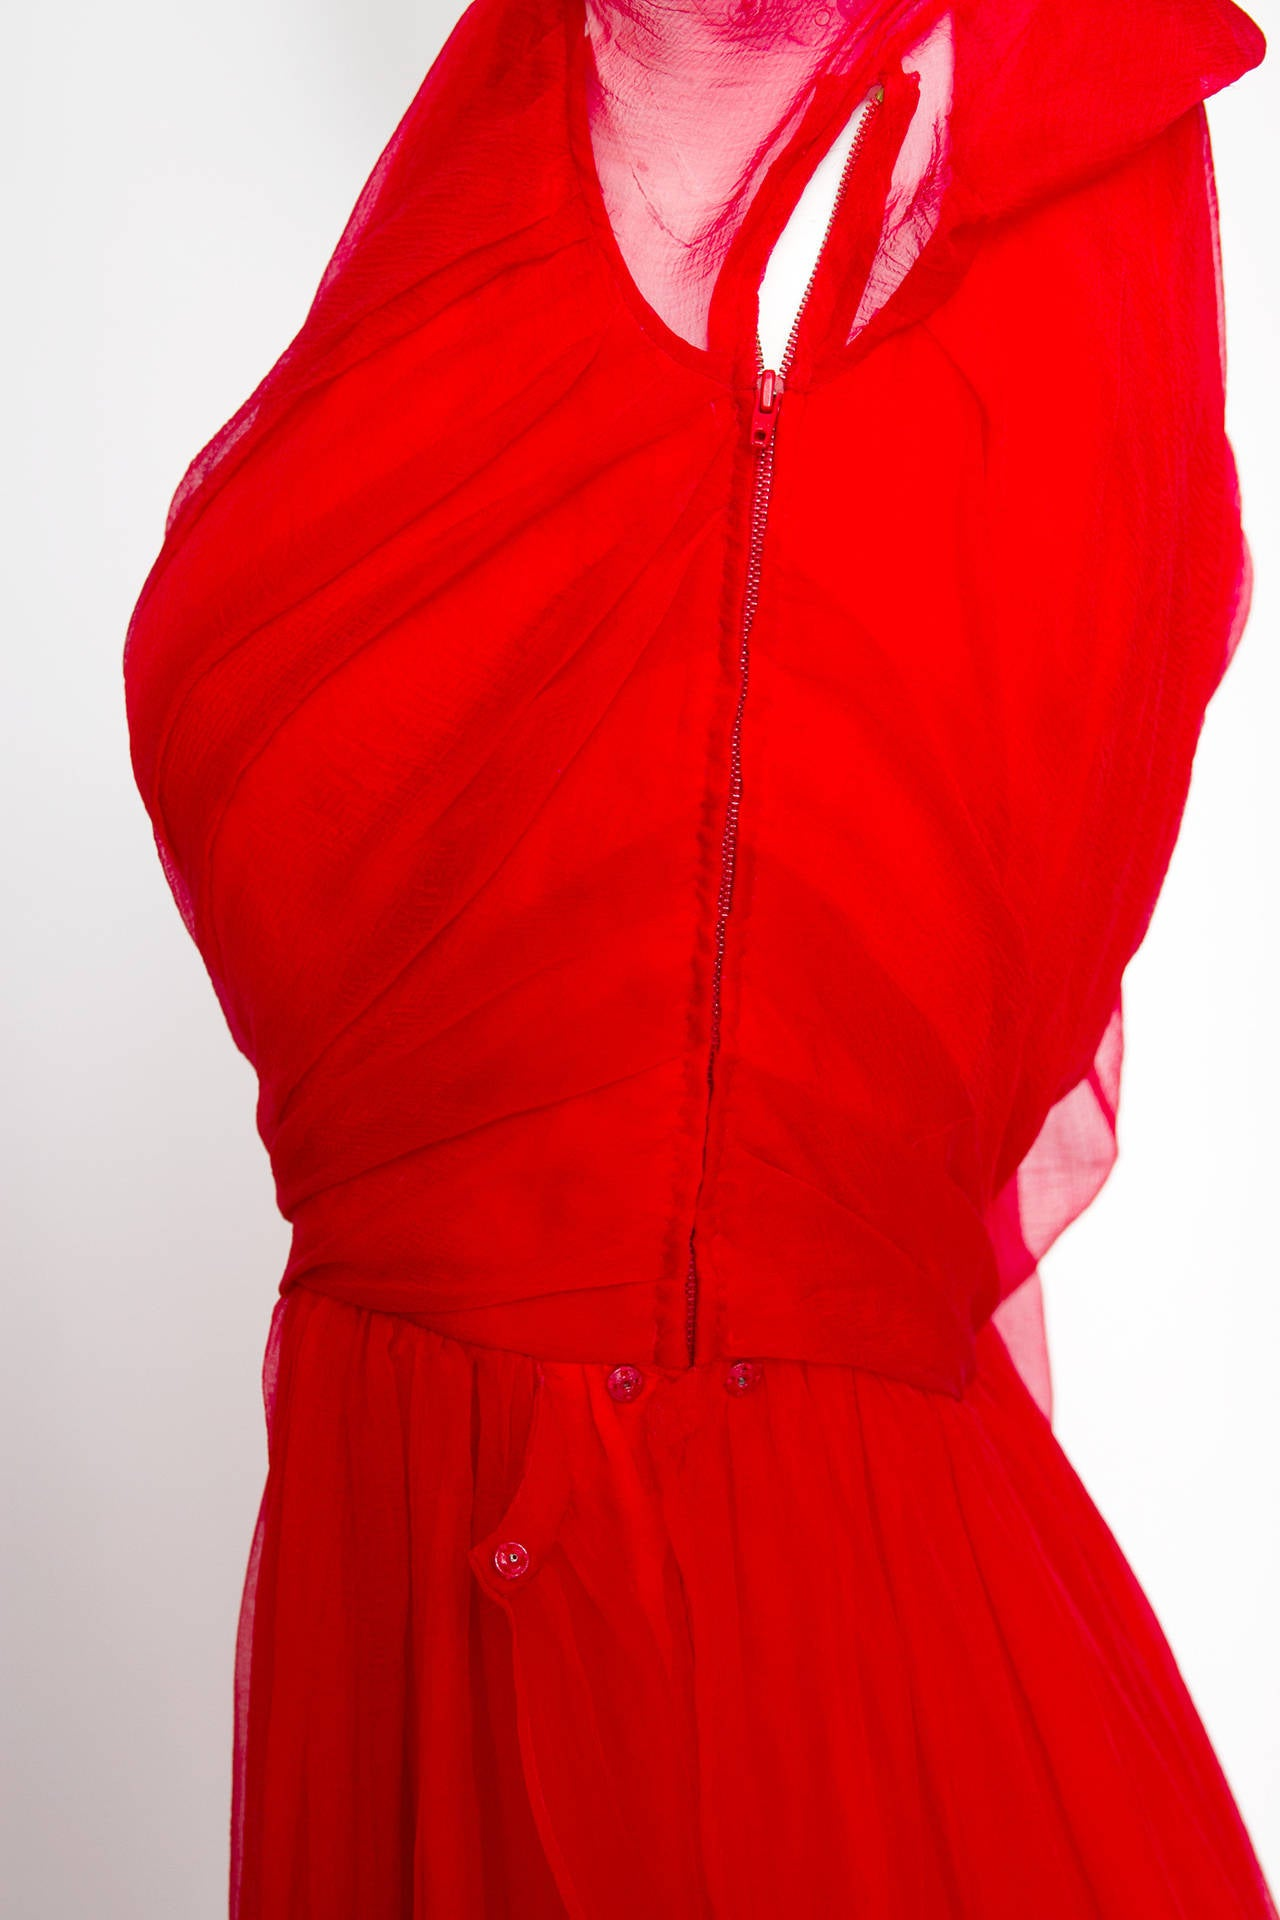 A Rare 1980s Yves Saint Laurent Haute Couture Silk Chiffon Dress For Sale 2